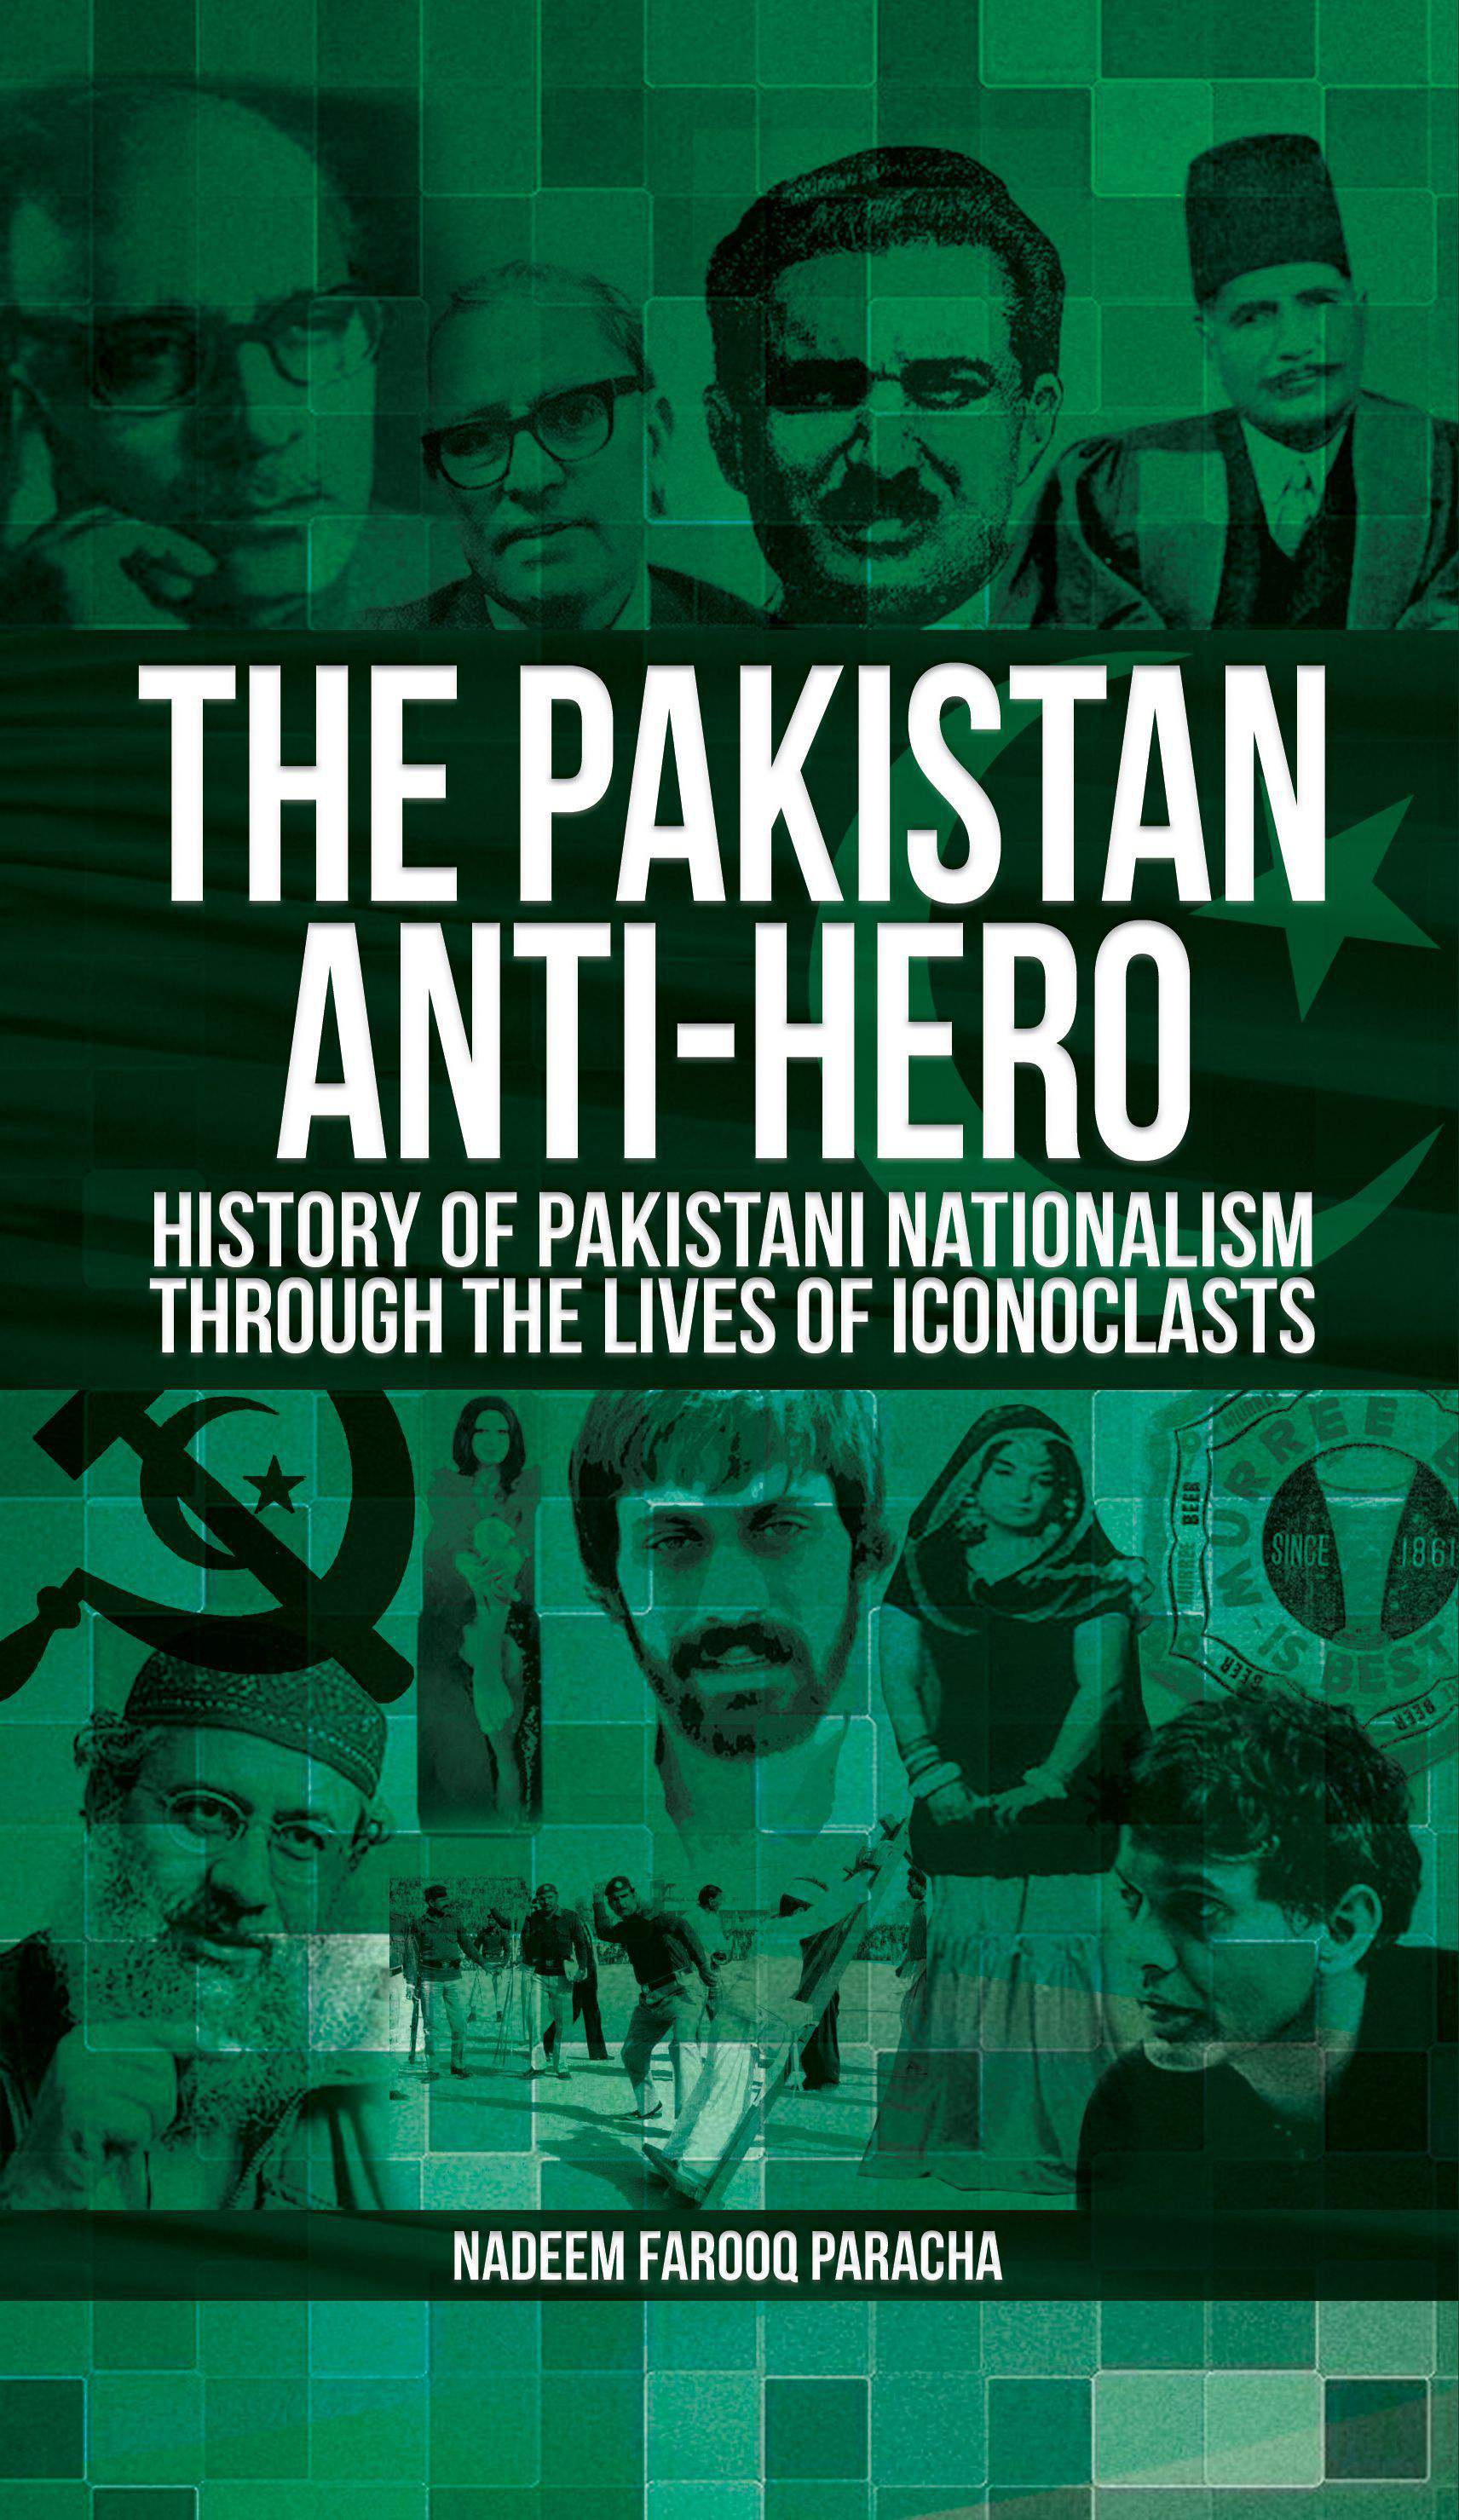 The Pakistan Anti-Hero